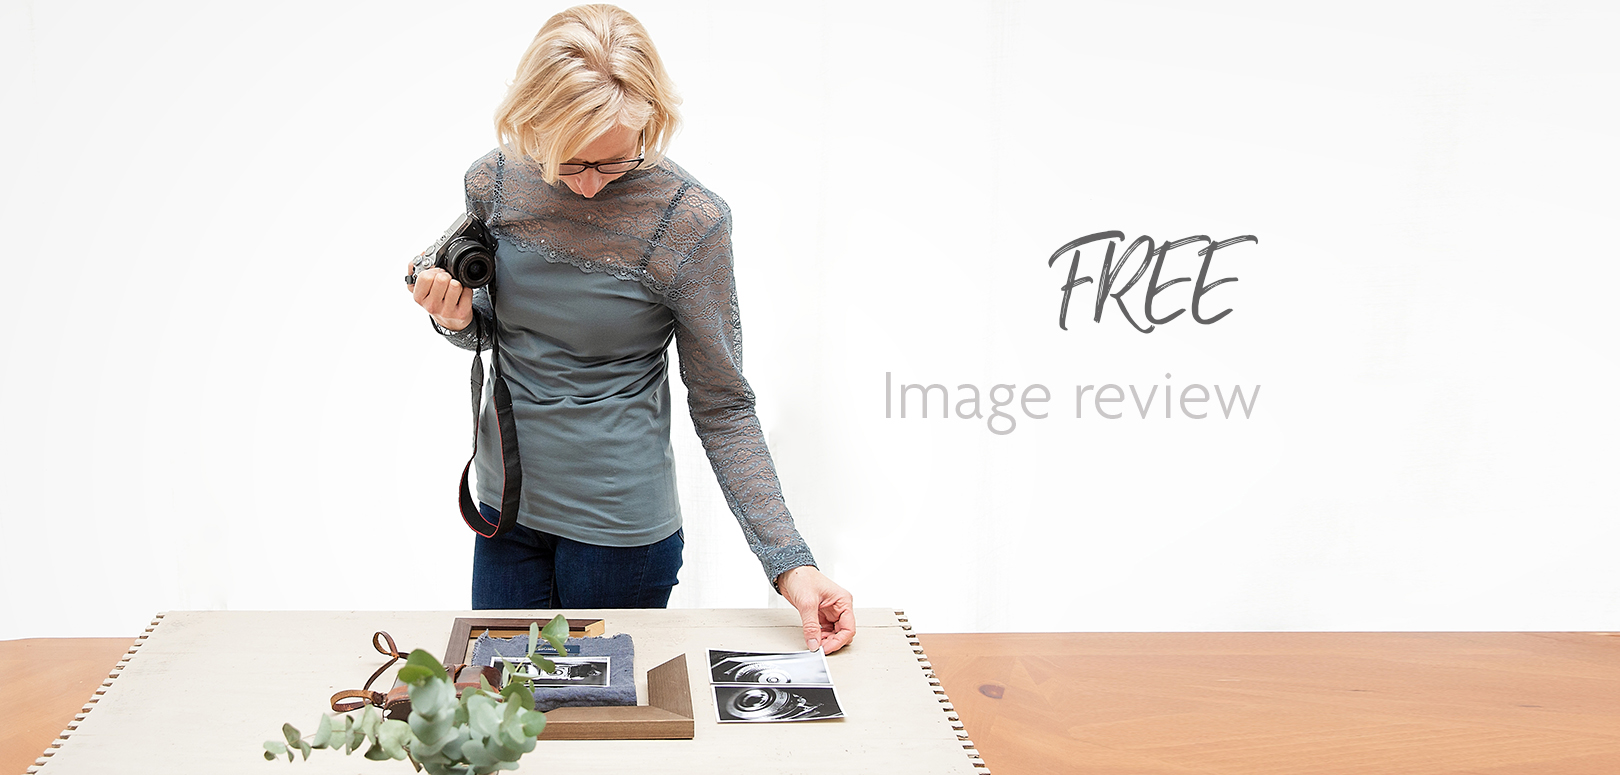 FREE Image review